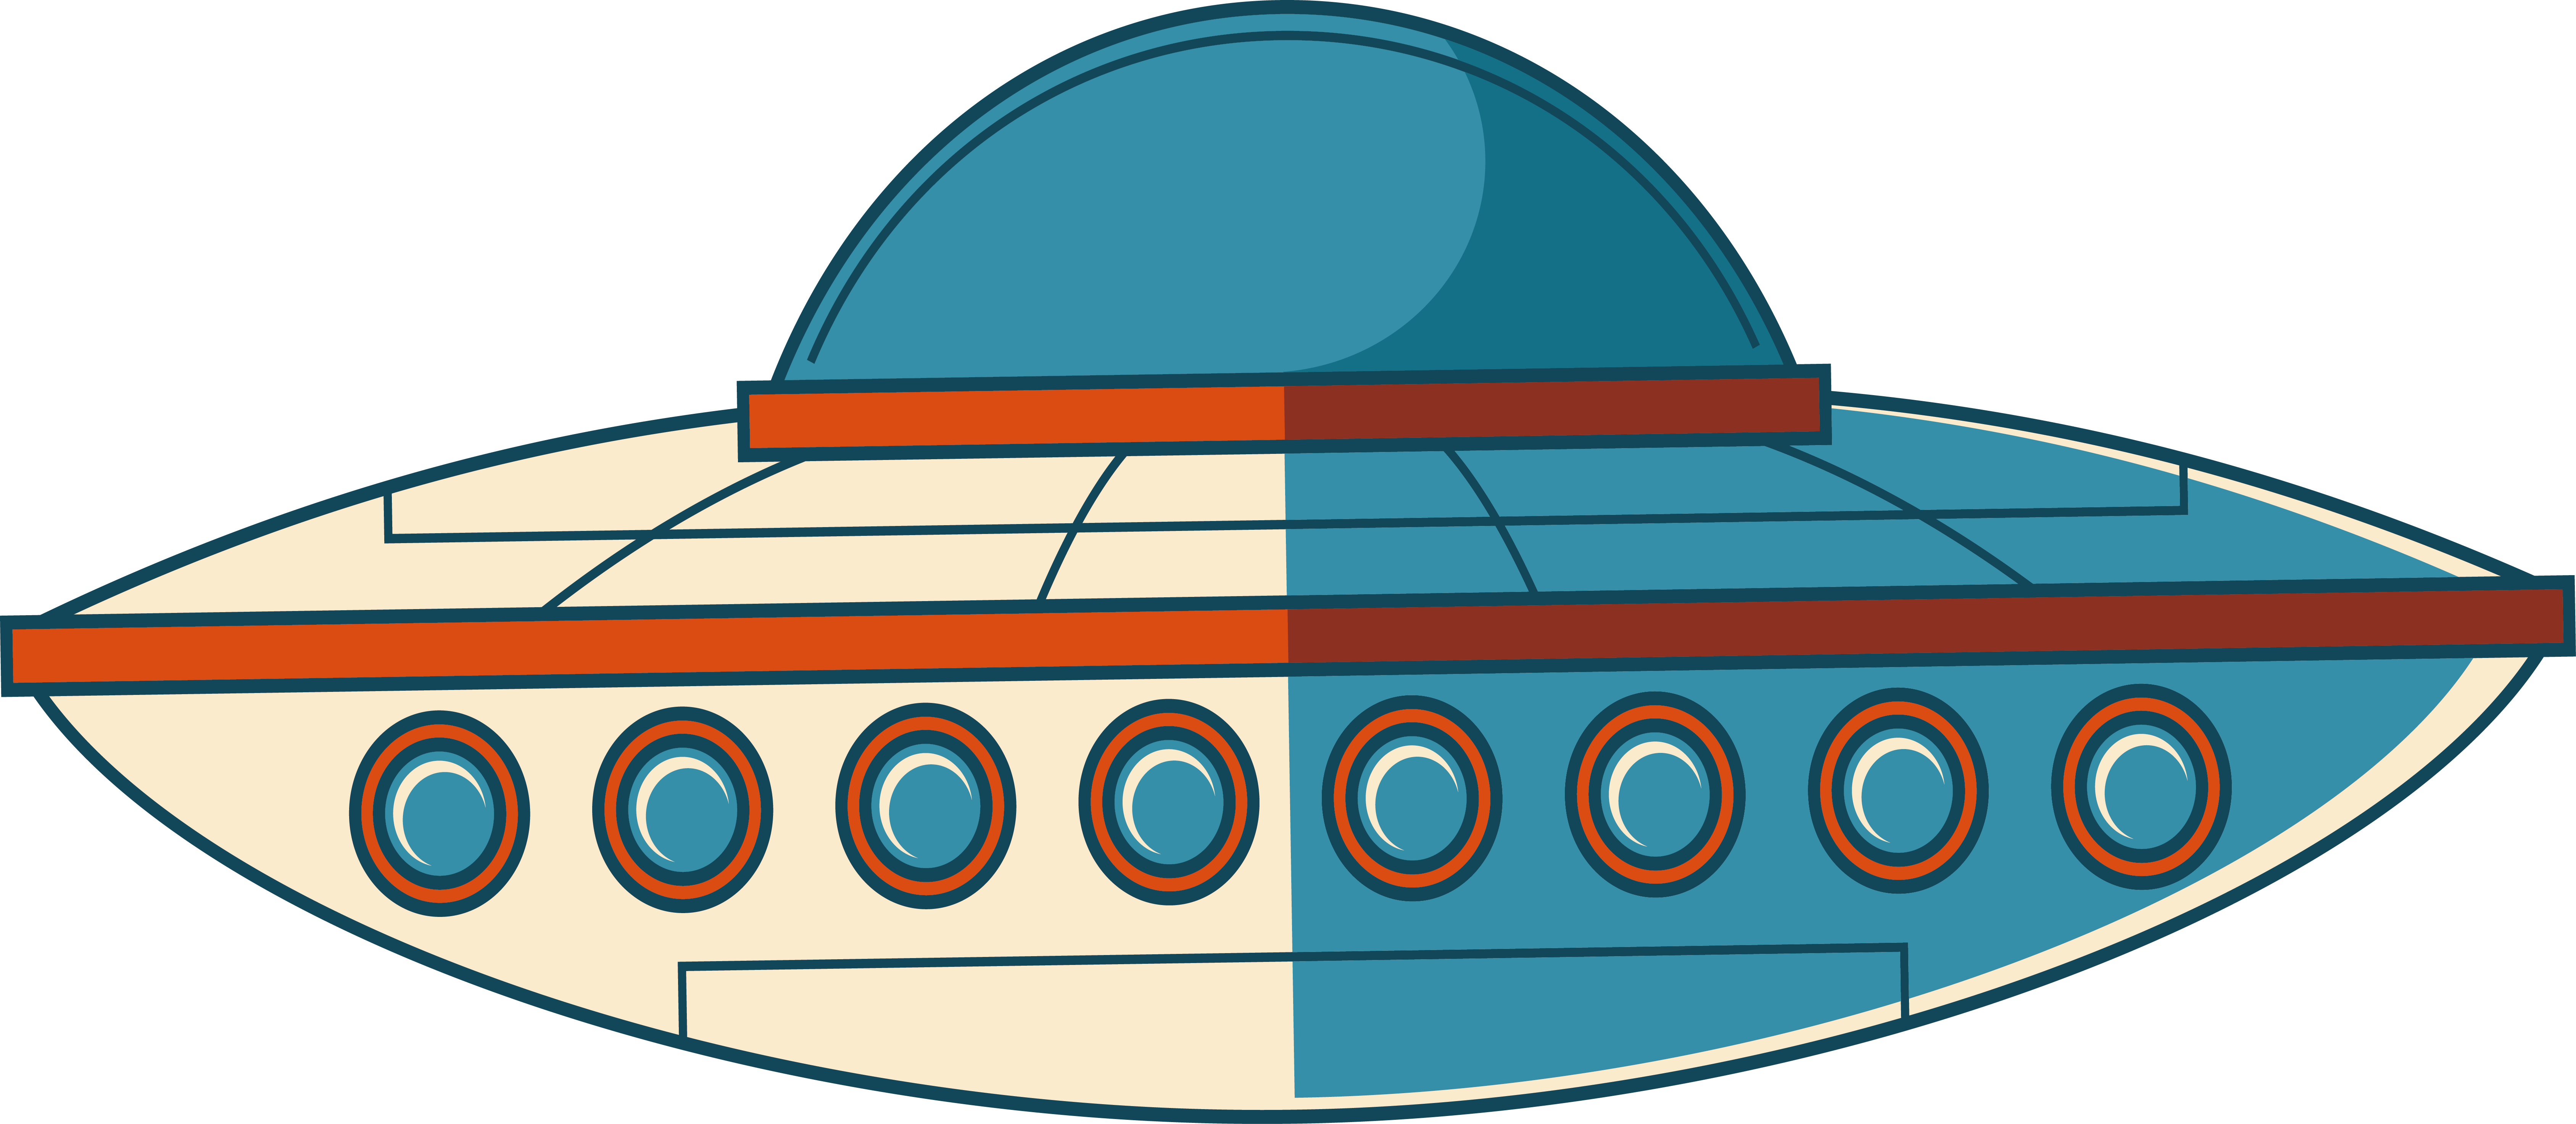 Unidentified flying object saucer. Ufo clipart line art